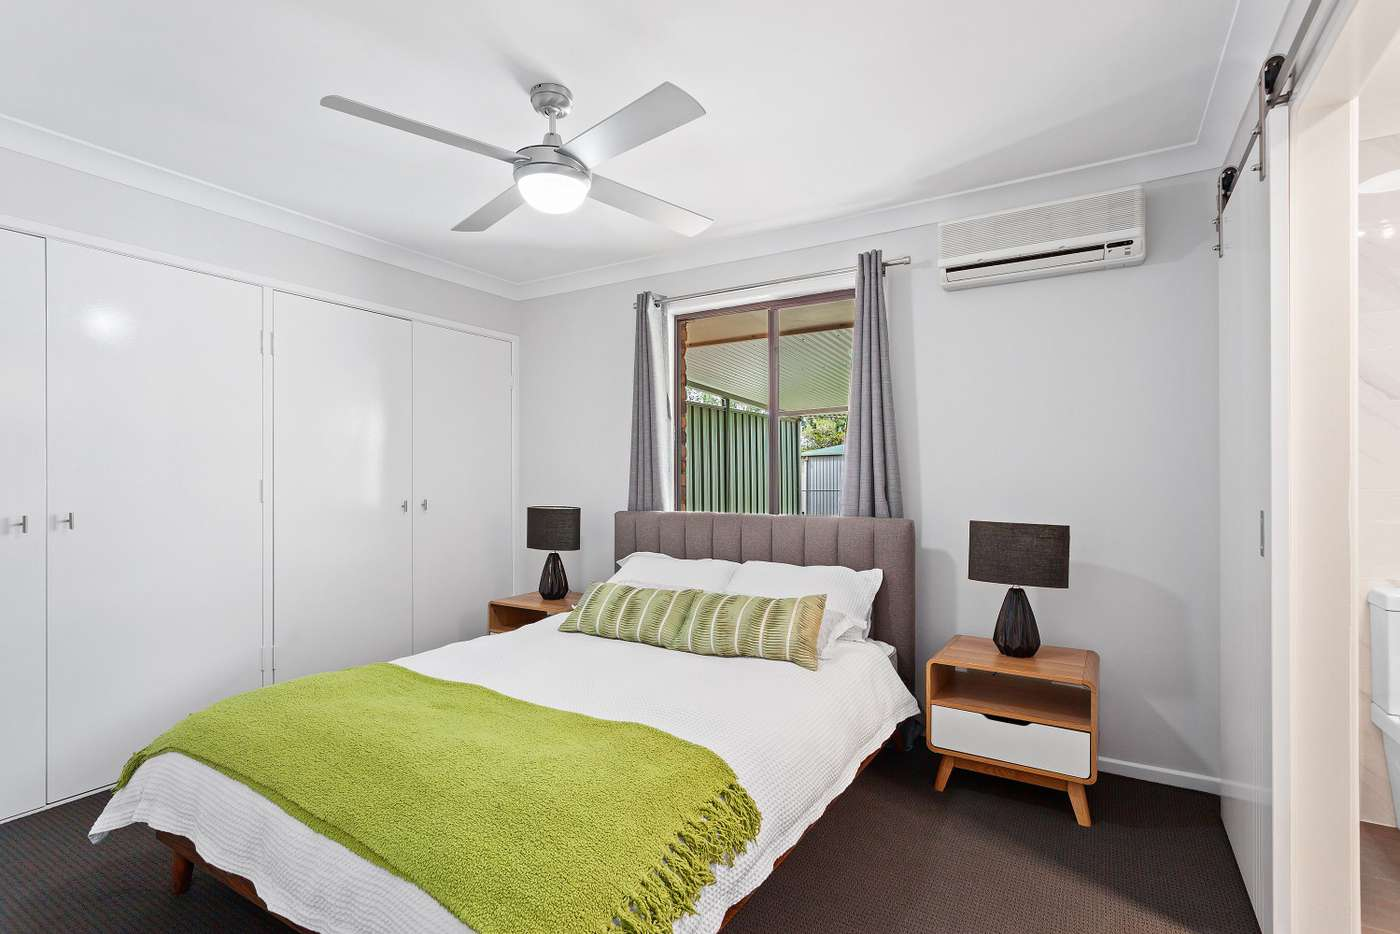 Seventh view of Homely house listing, 21 Blue Gum Drive, Highfields QLD 4352